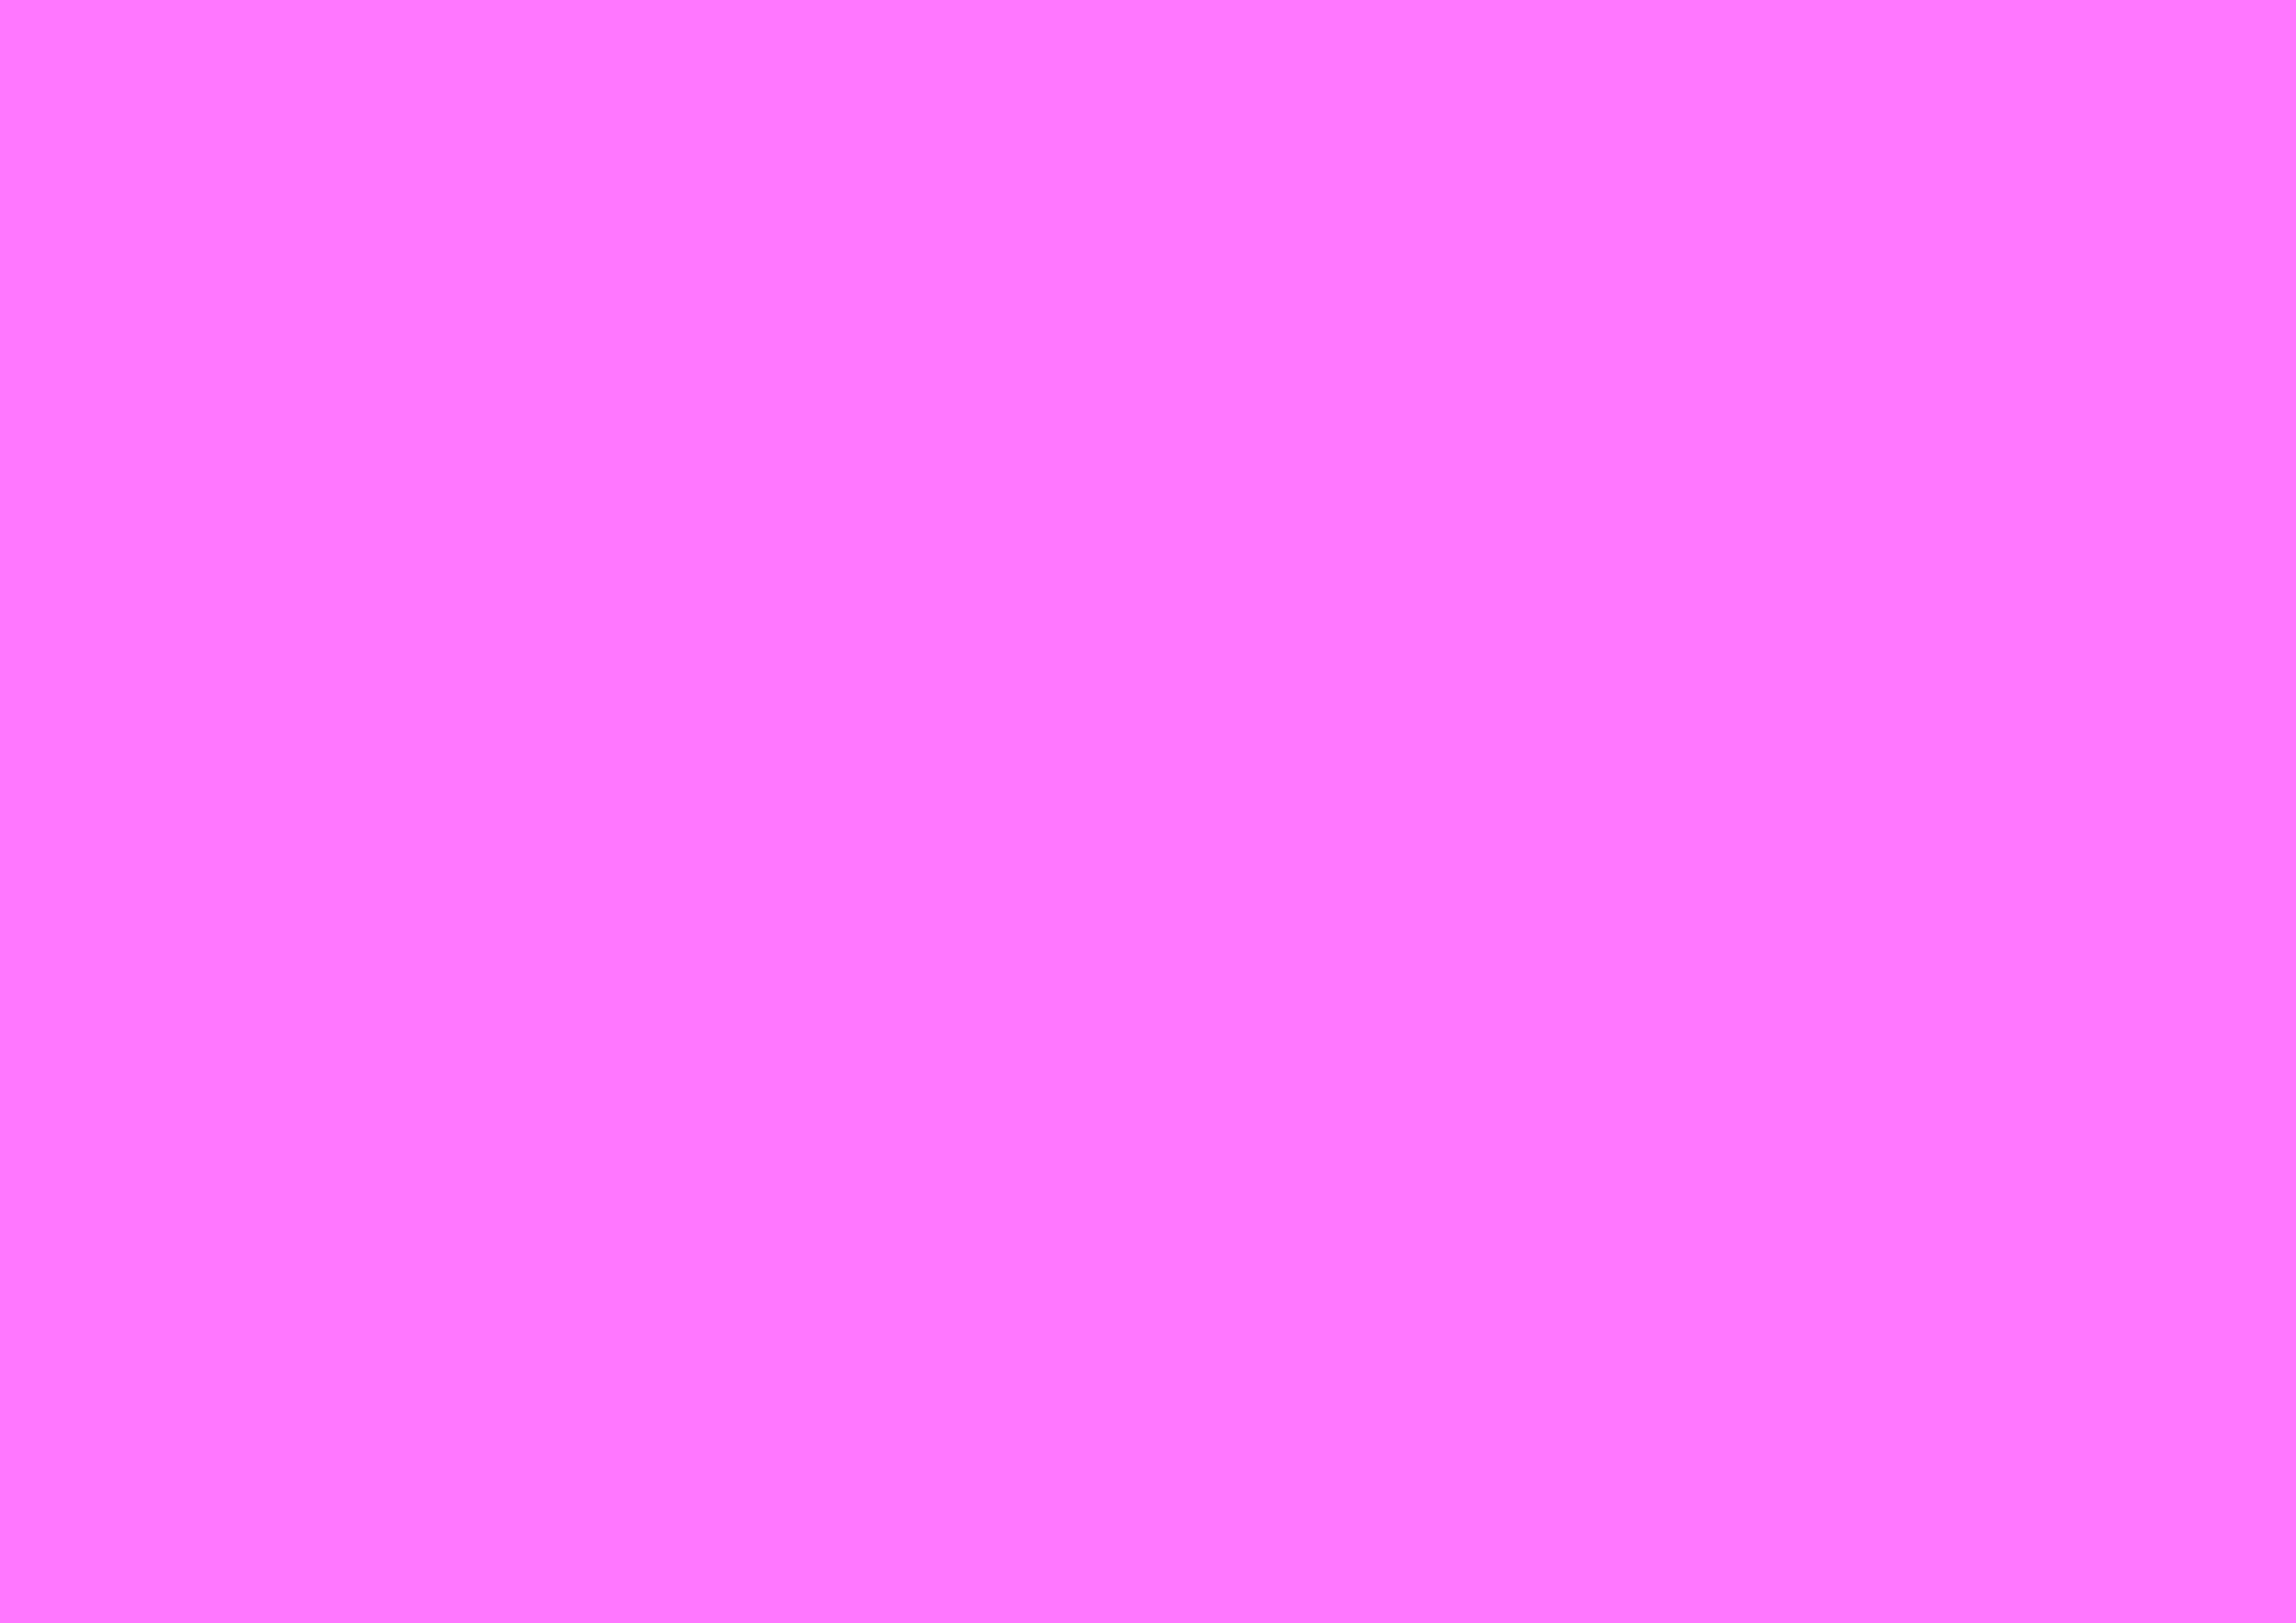 3508x2480 Fuchsia Pink Solid Color Background